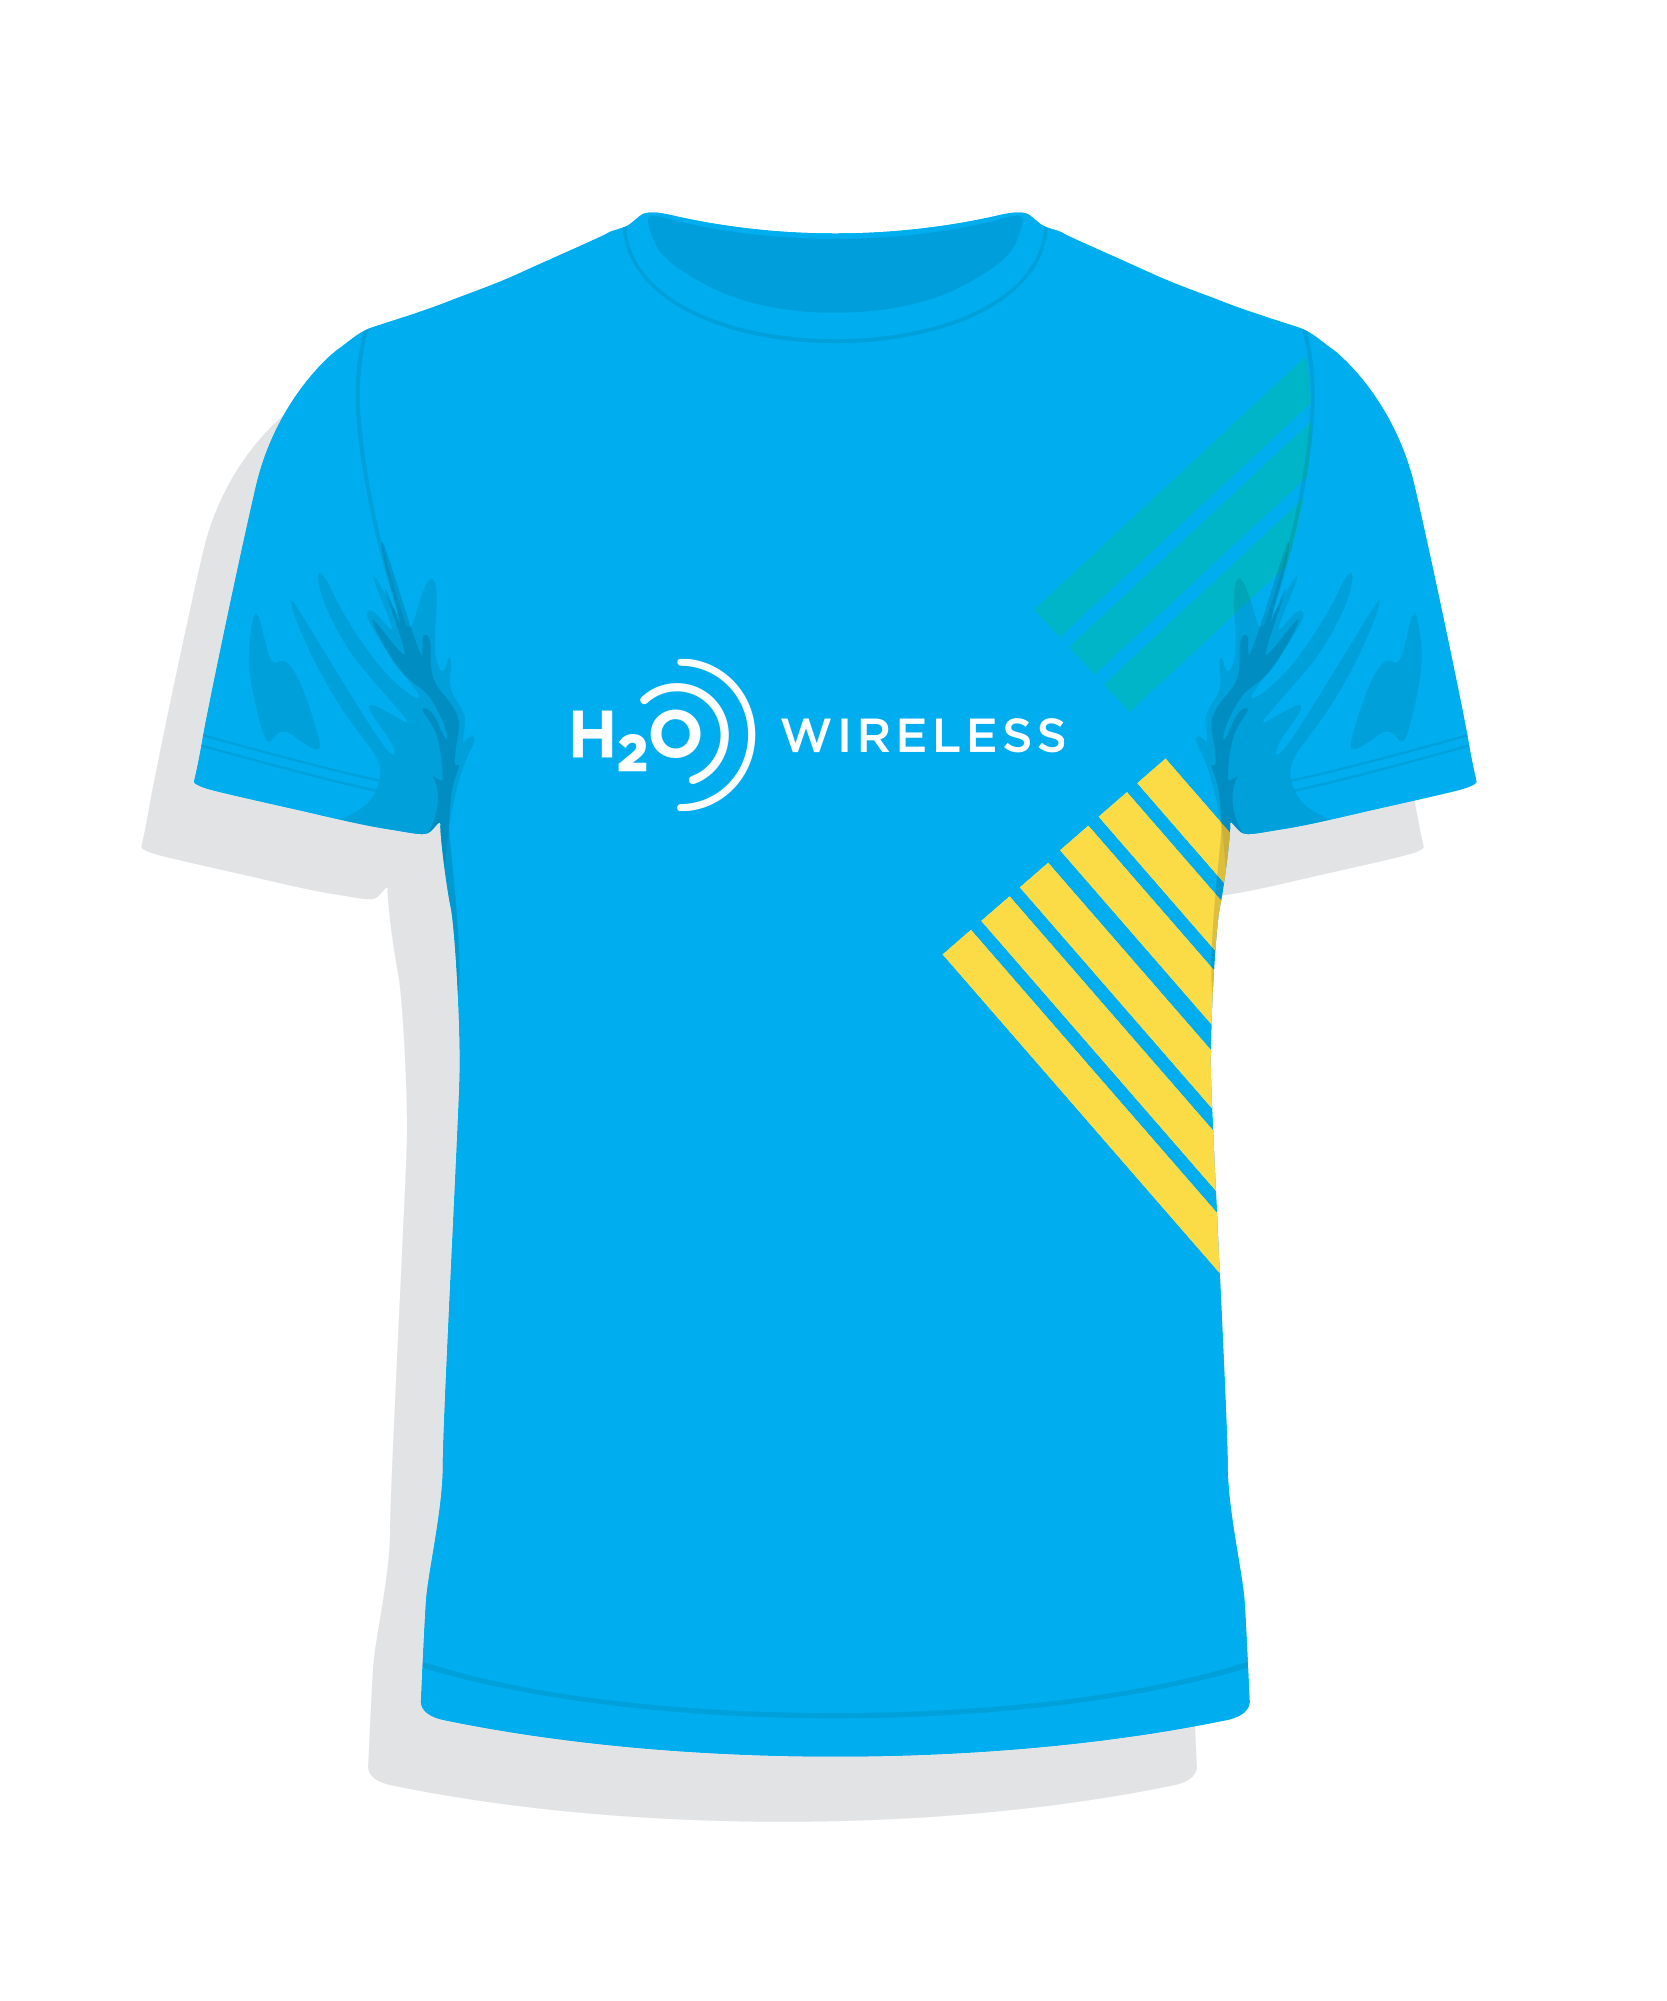 H2O Wireless T-Shirt